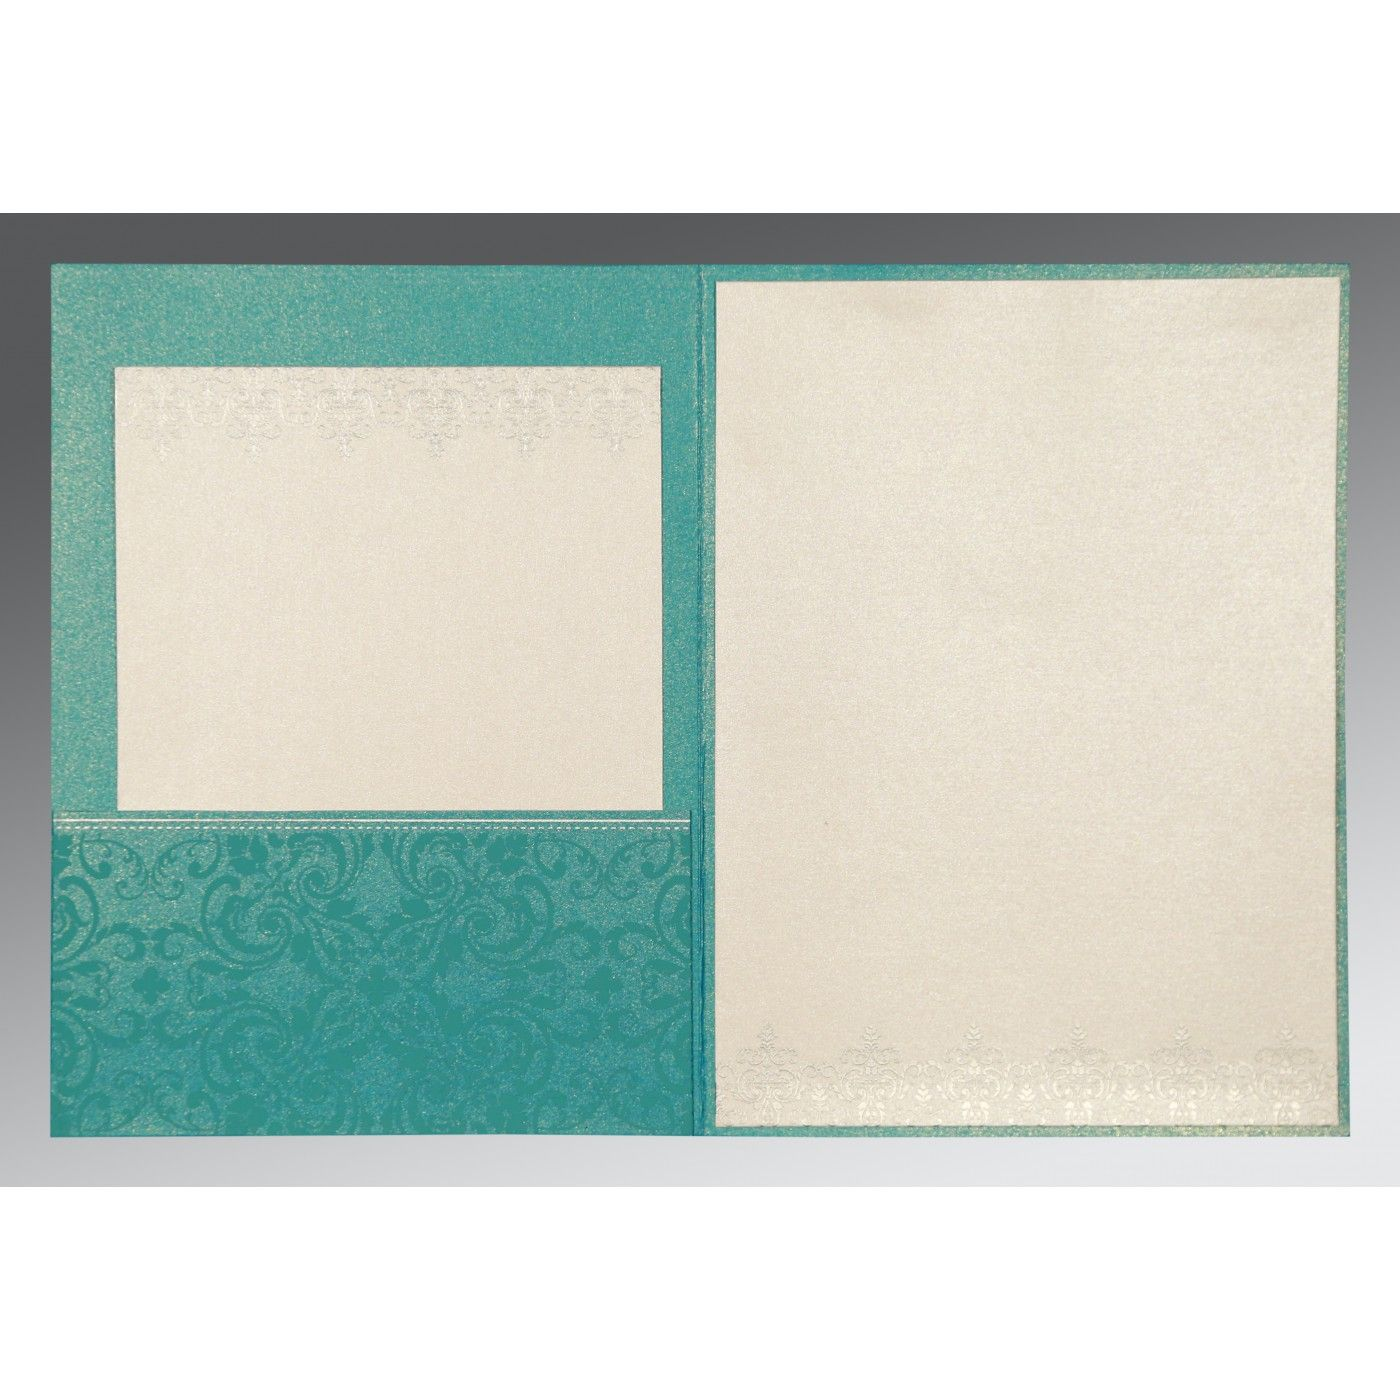 TEAL BLUE SHIMMERY SCREEN PRINTED WEDDING CARD : CIN-8244C - IndianWeddingCards